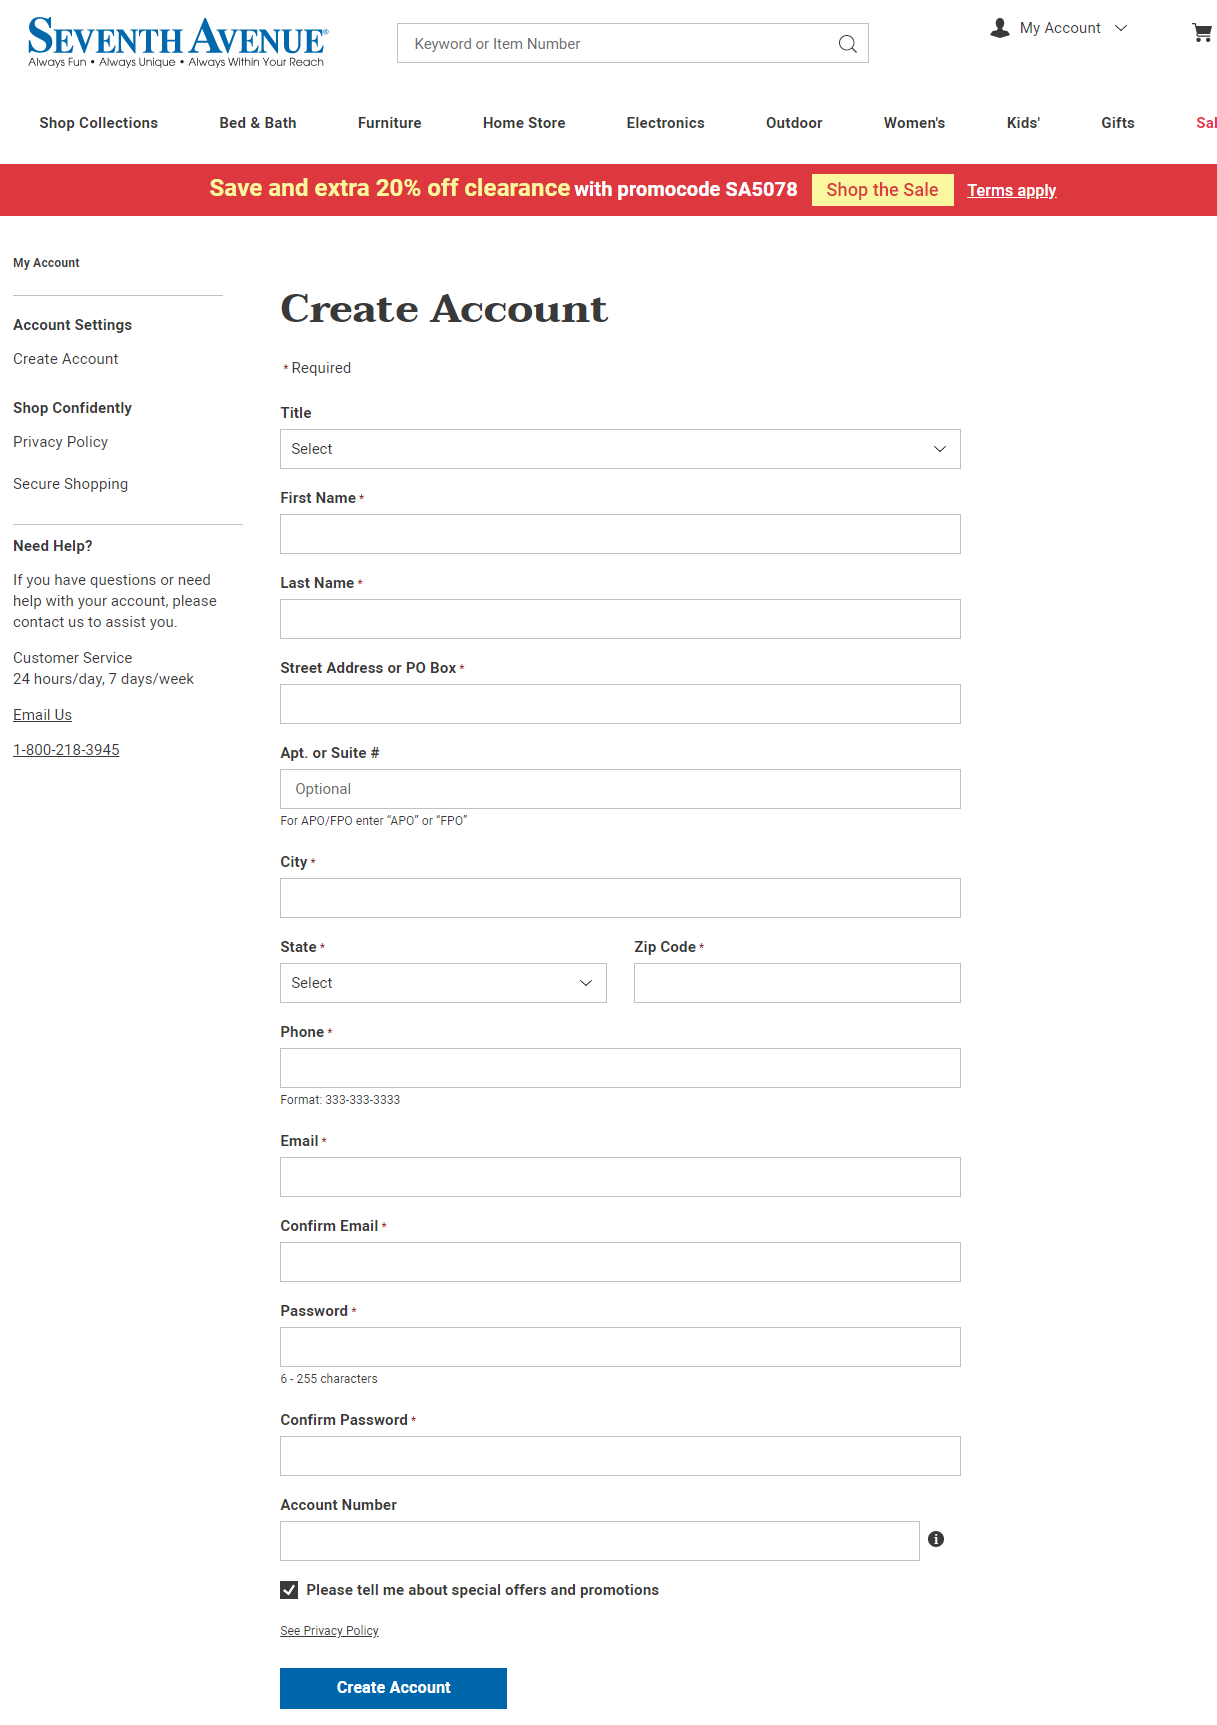 Seventh Avenue Credit Card Account Registration